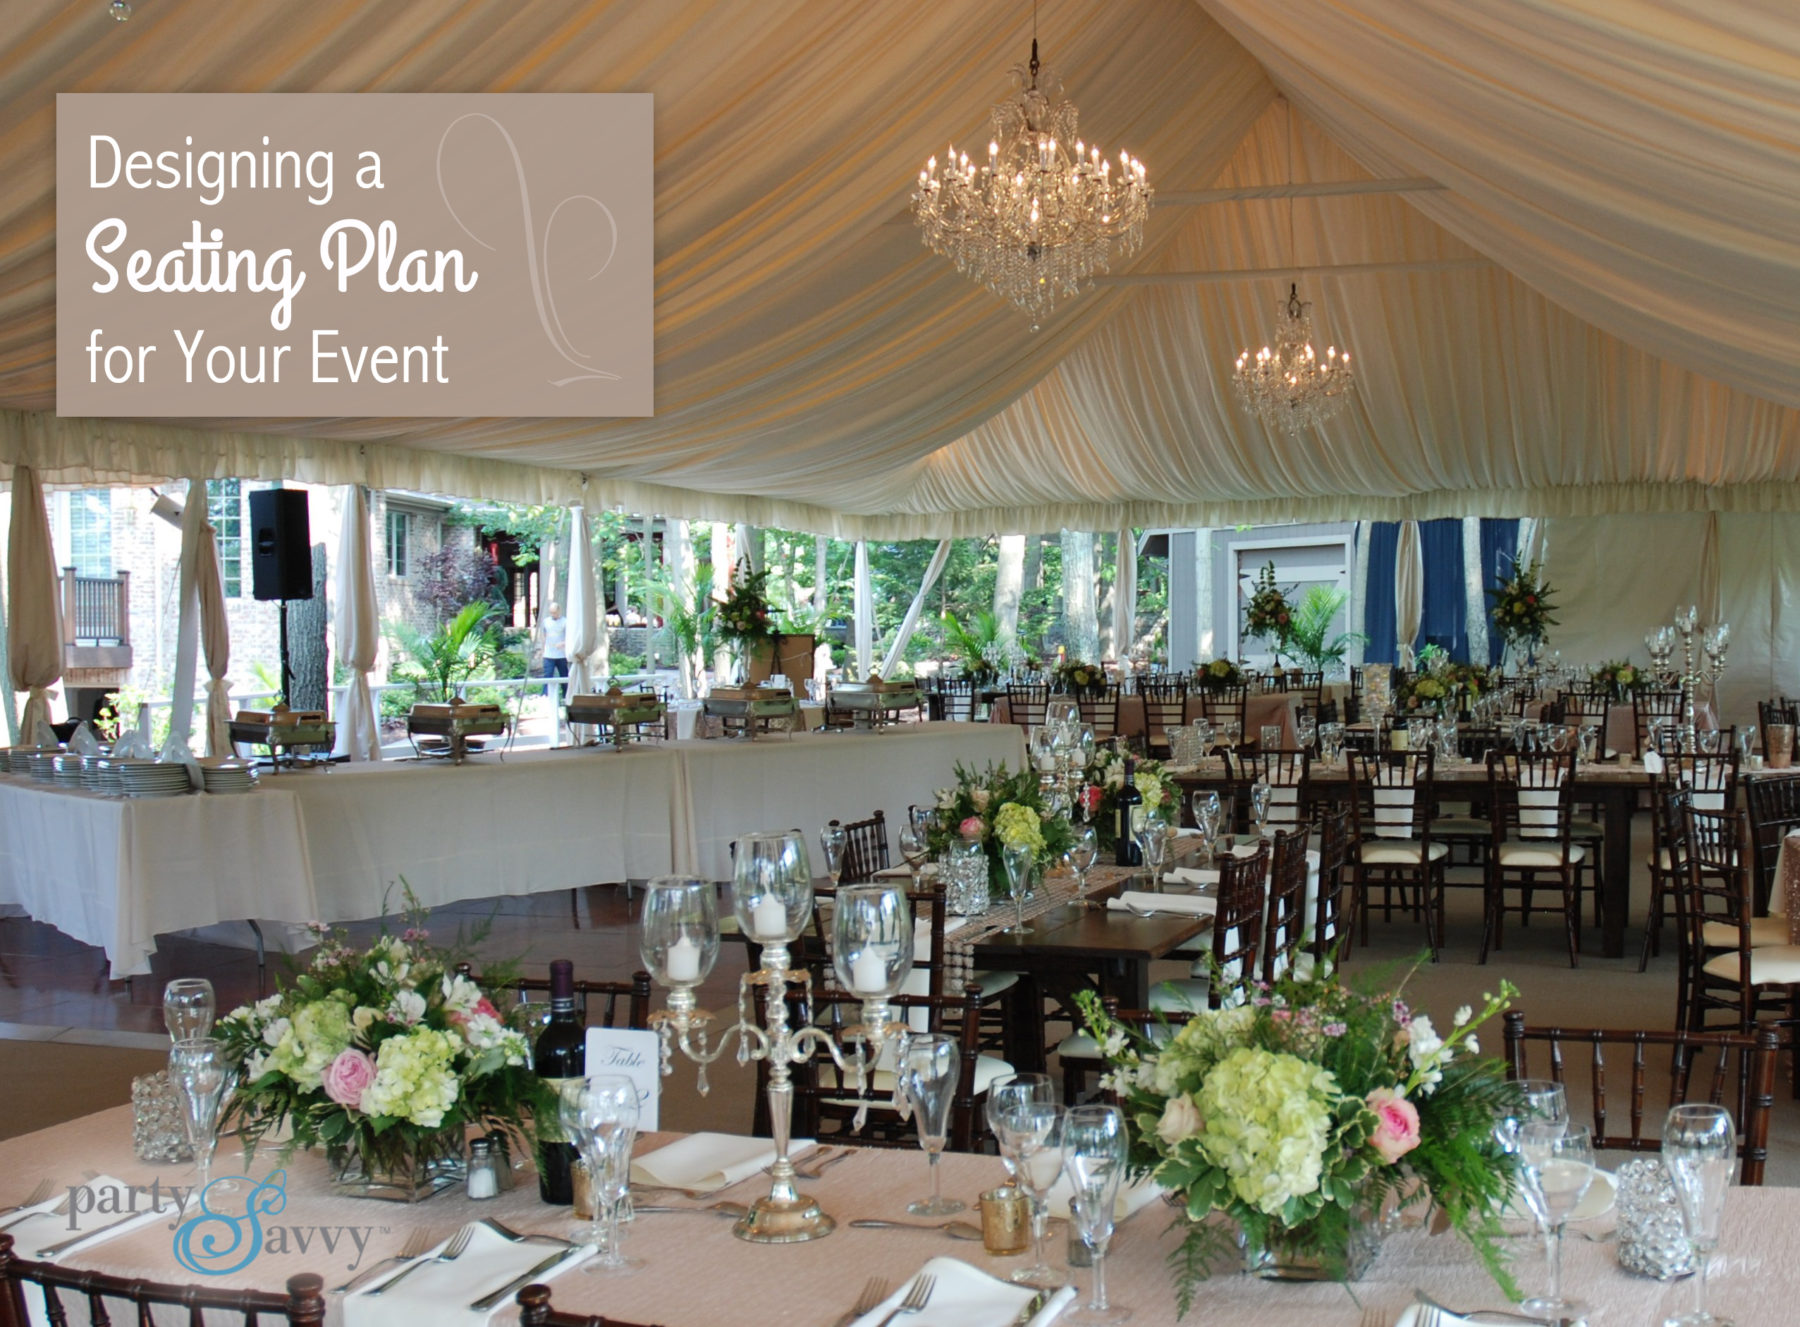 Designing A Seating Plan For Your Event Partysavvy